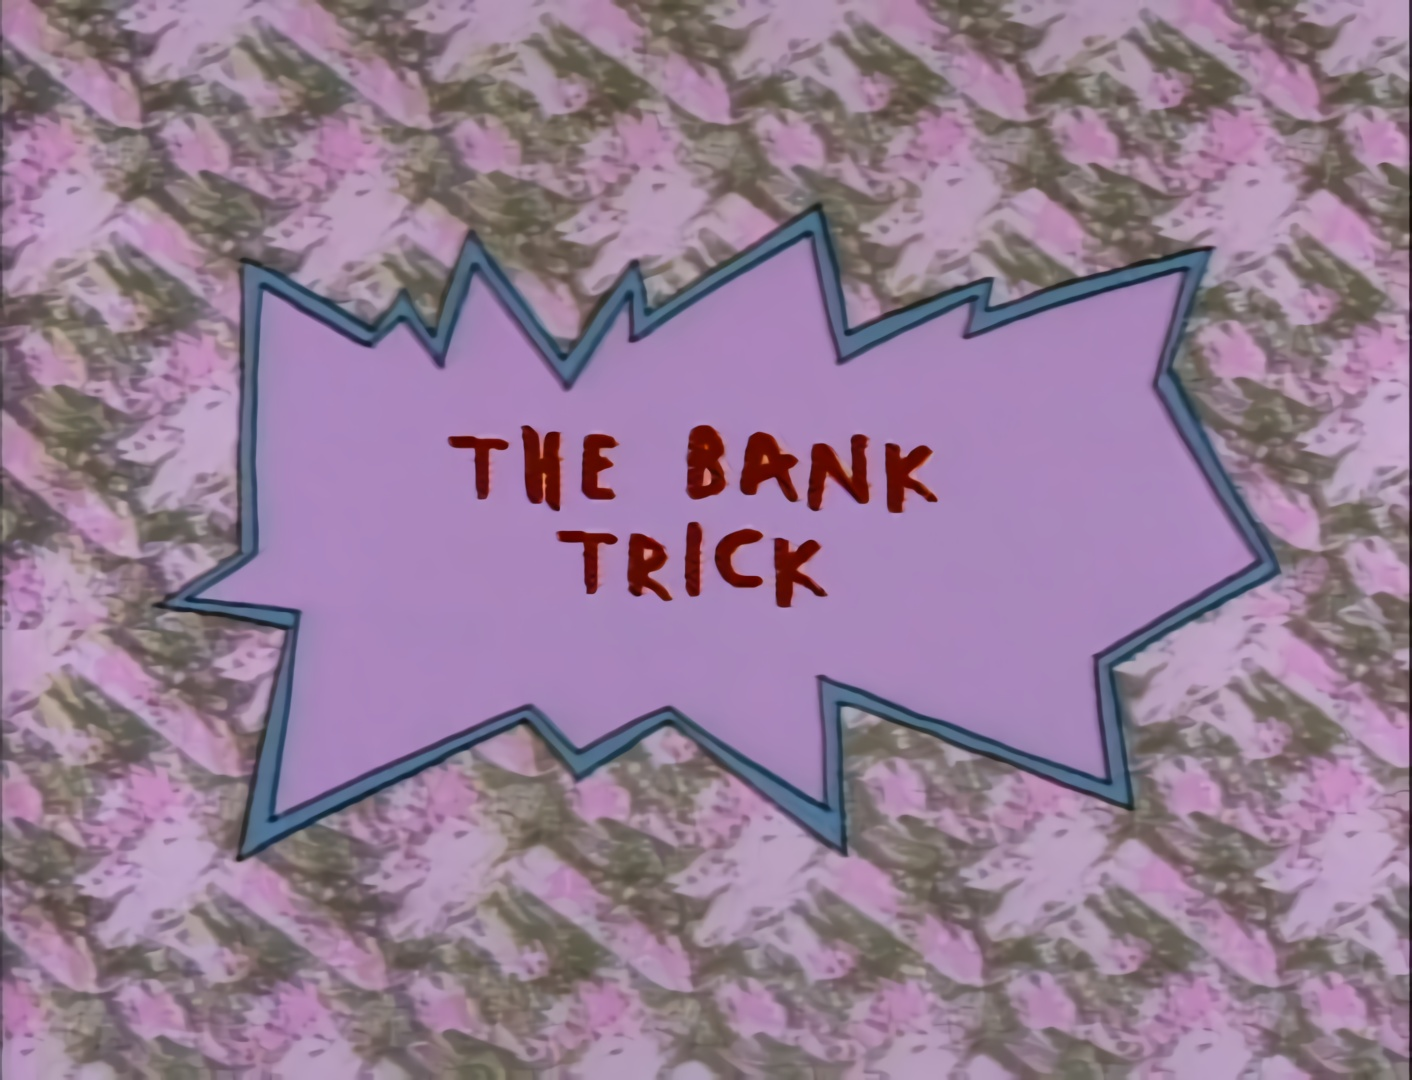 The Bank Trick